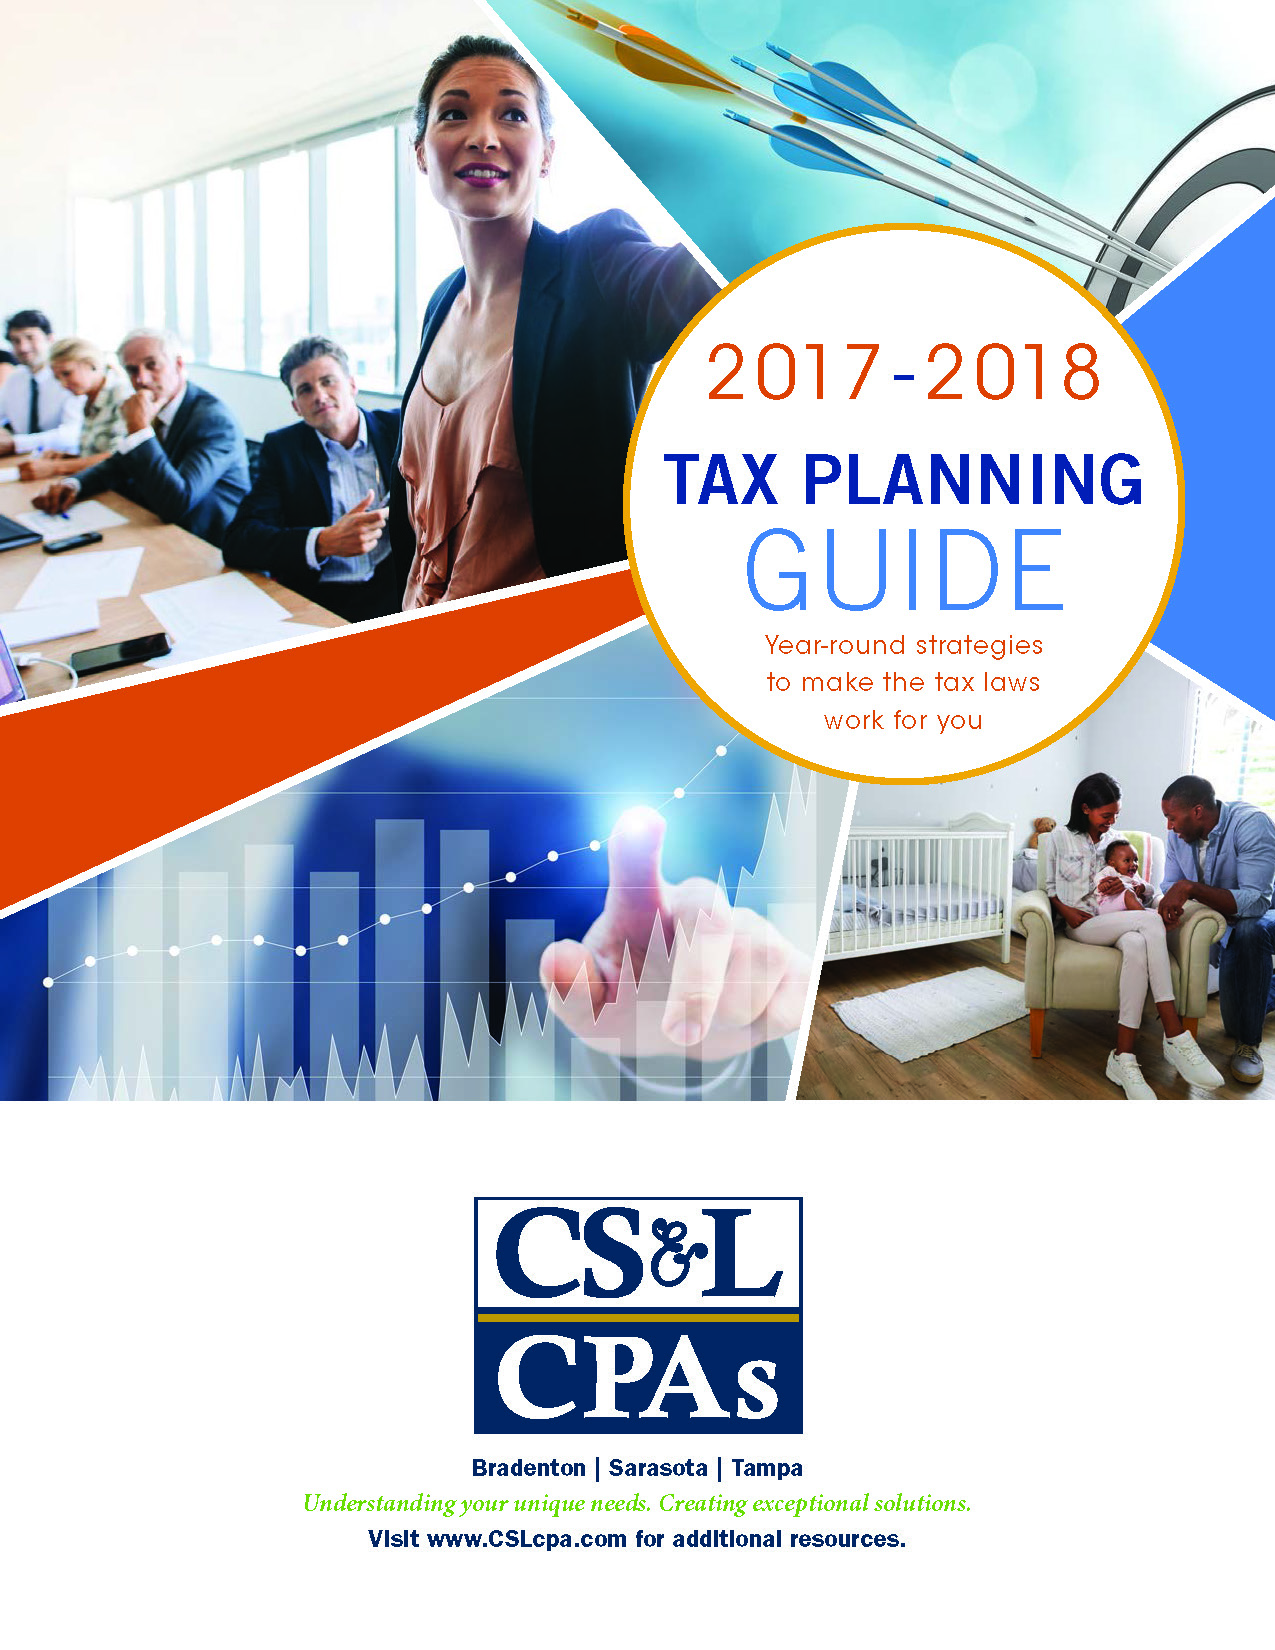 CS&L CPAs 2017 Year End Tax Planning Guide